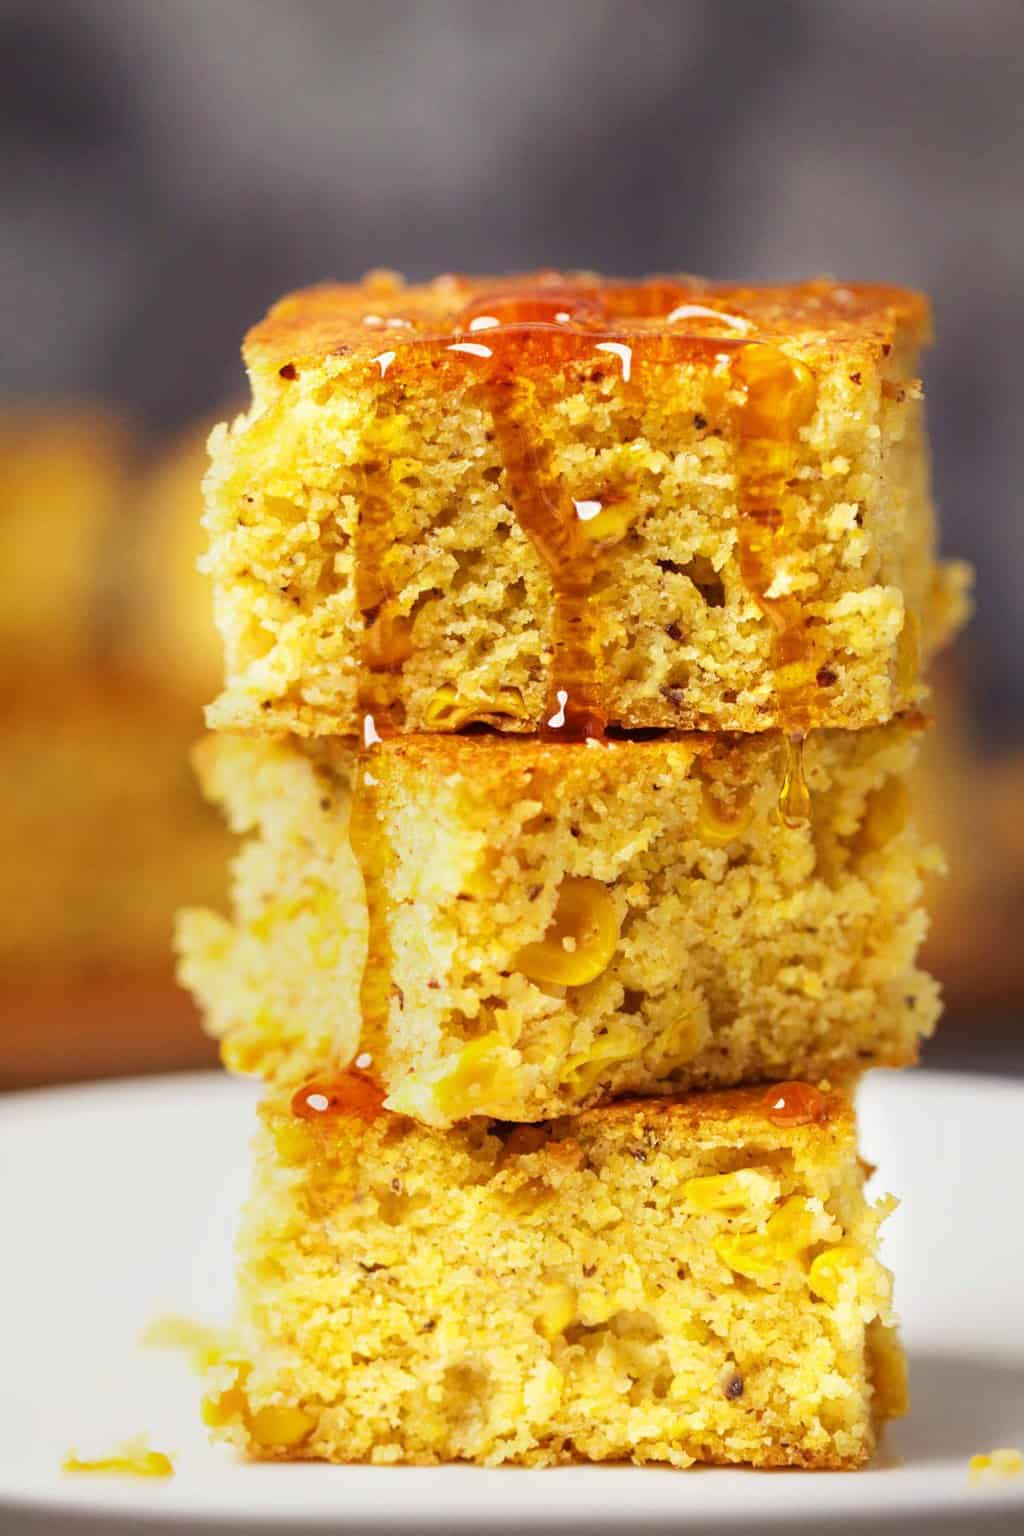 A stack of vegan cornbread drizzled with syrup.